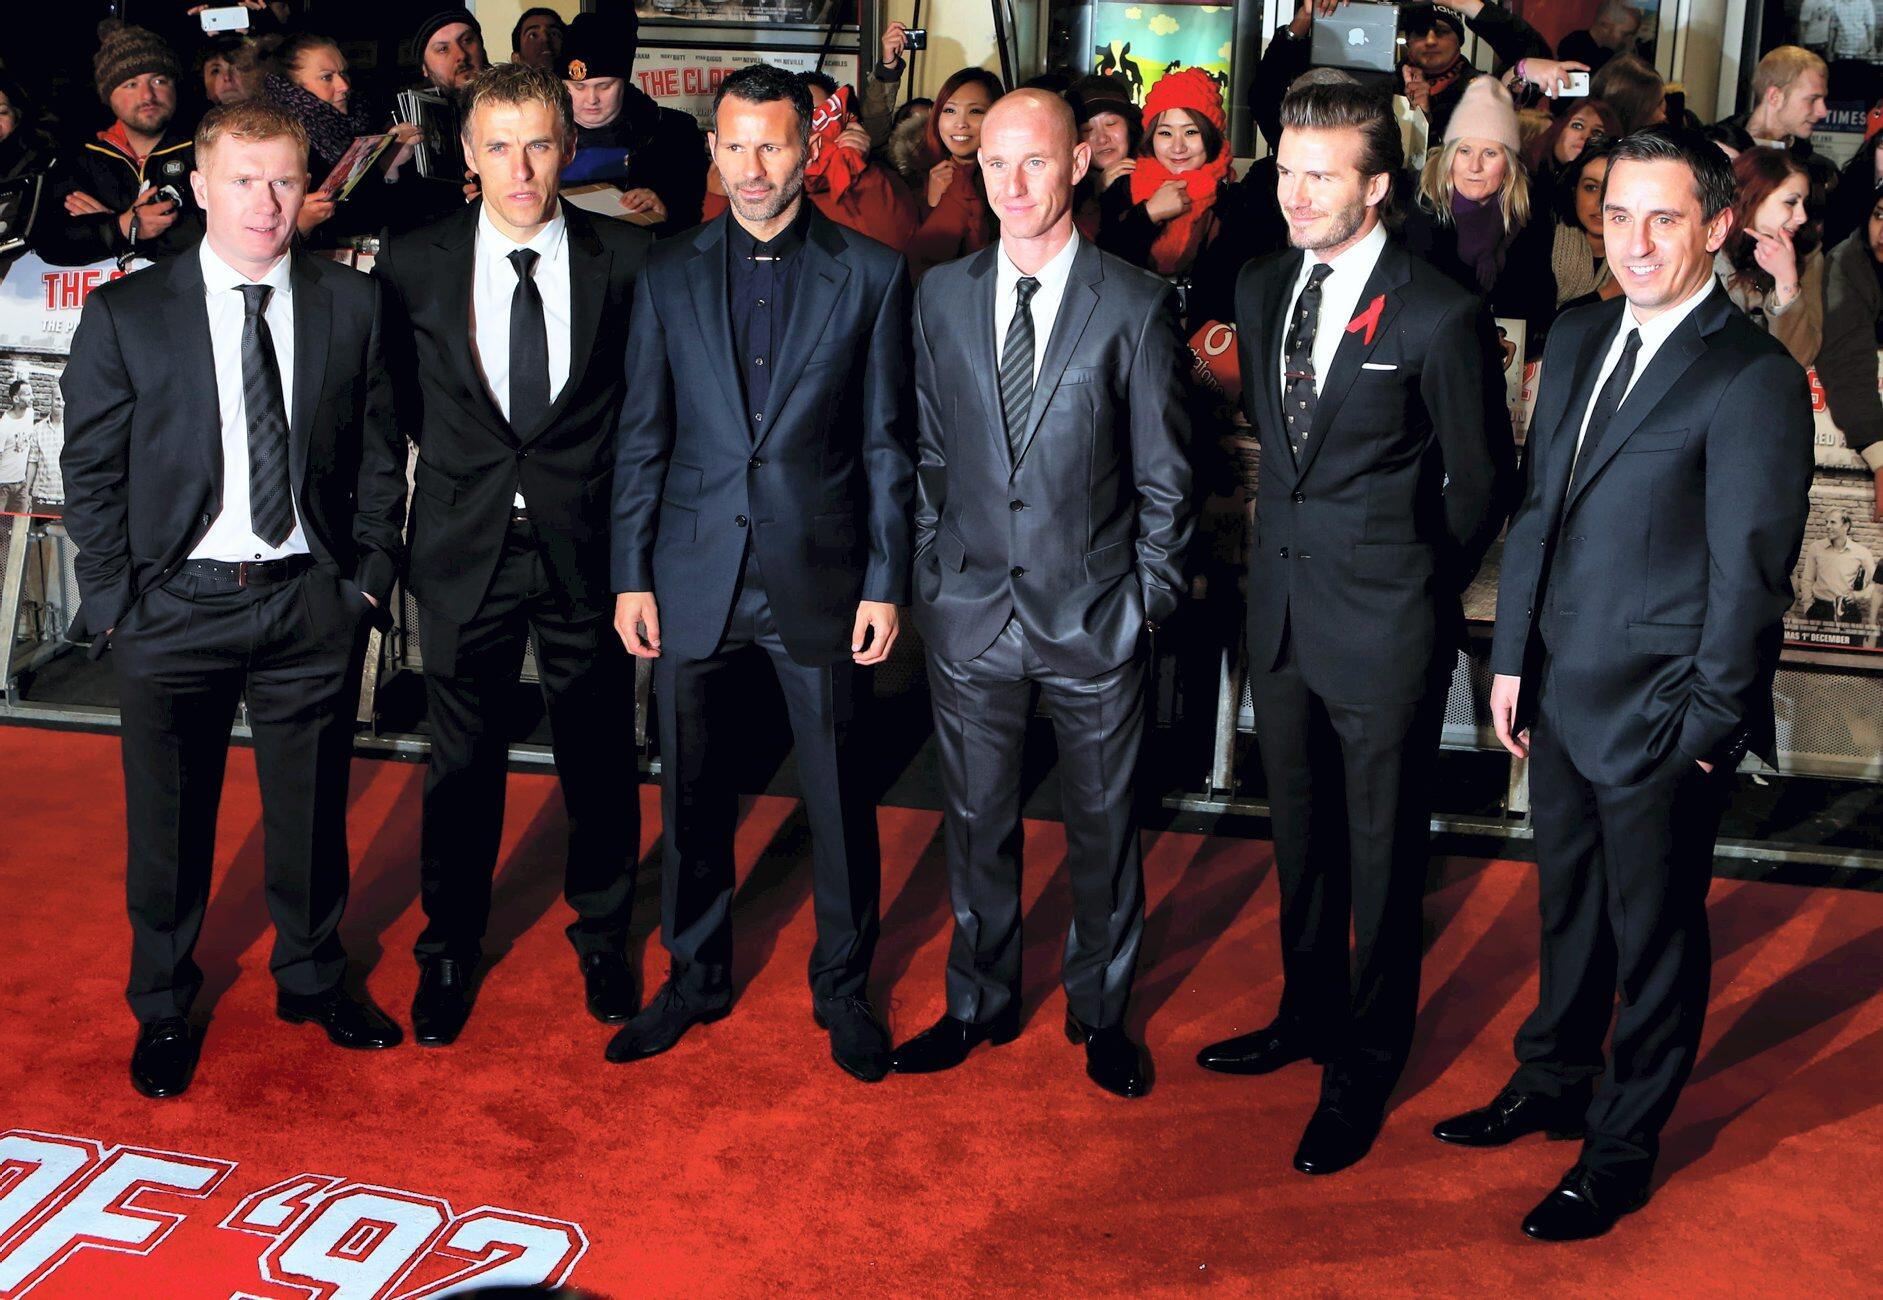 Looking sharp! A suited up Class of 92 pose for a photo on the red carpet